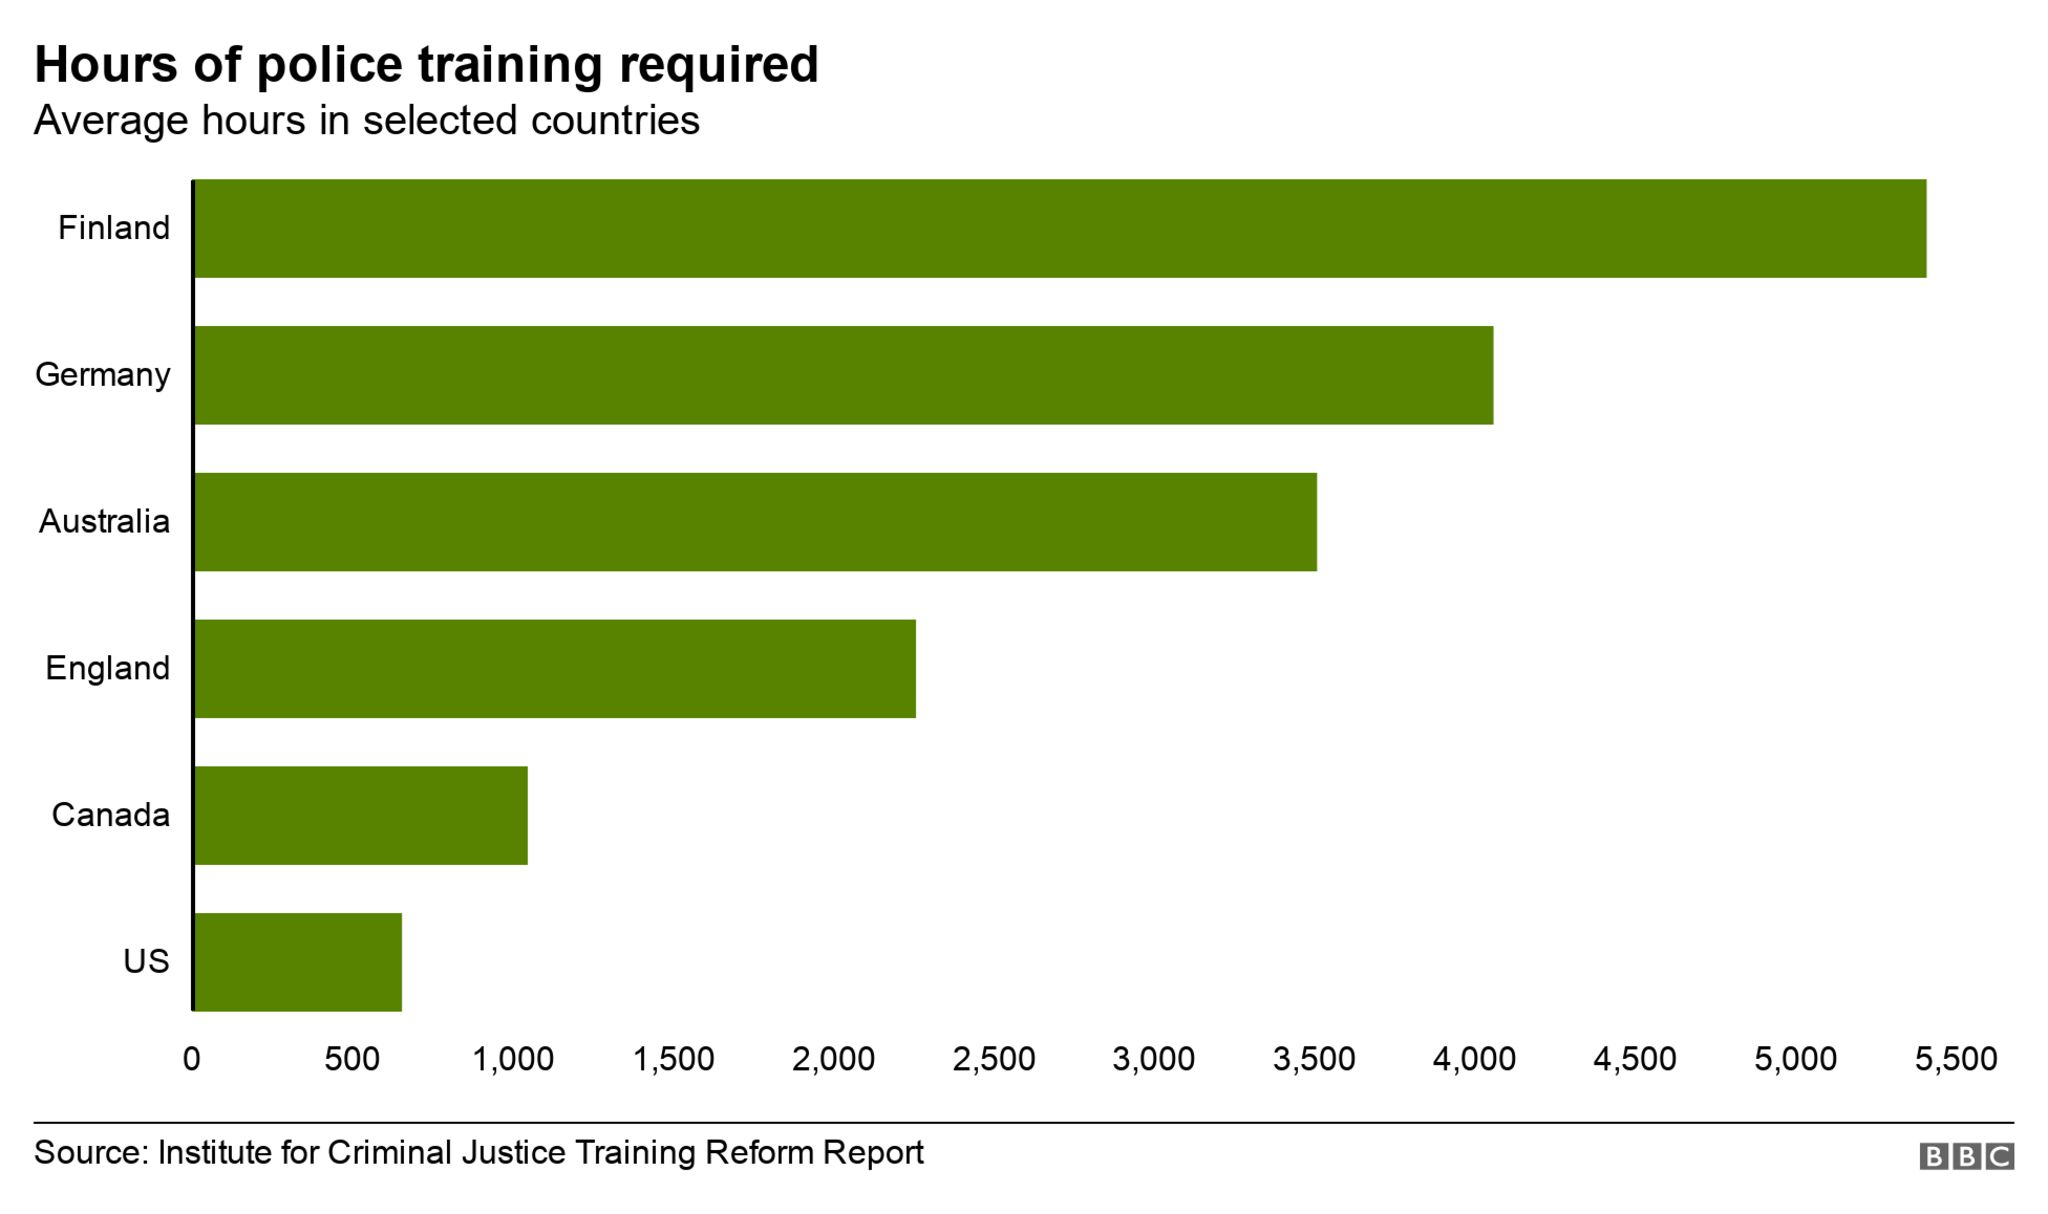 Police training hours